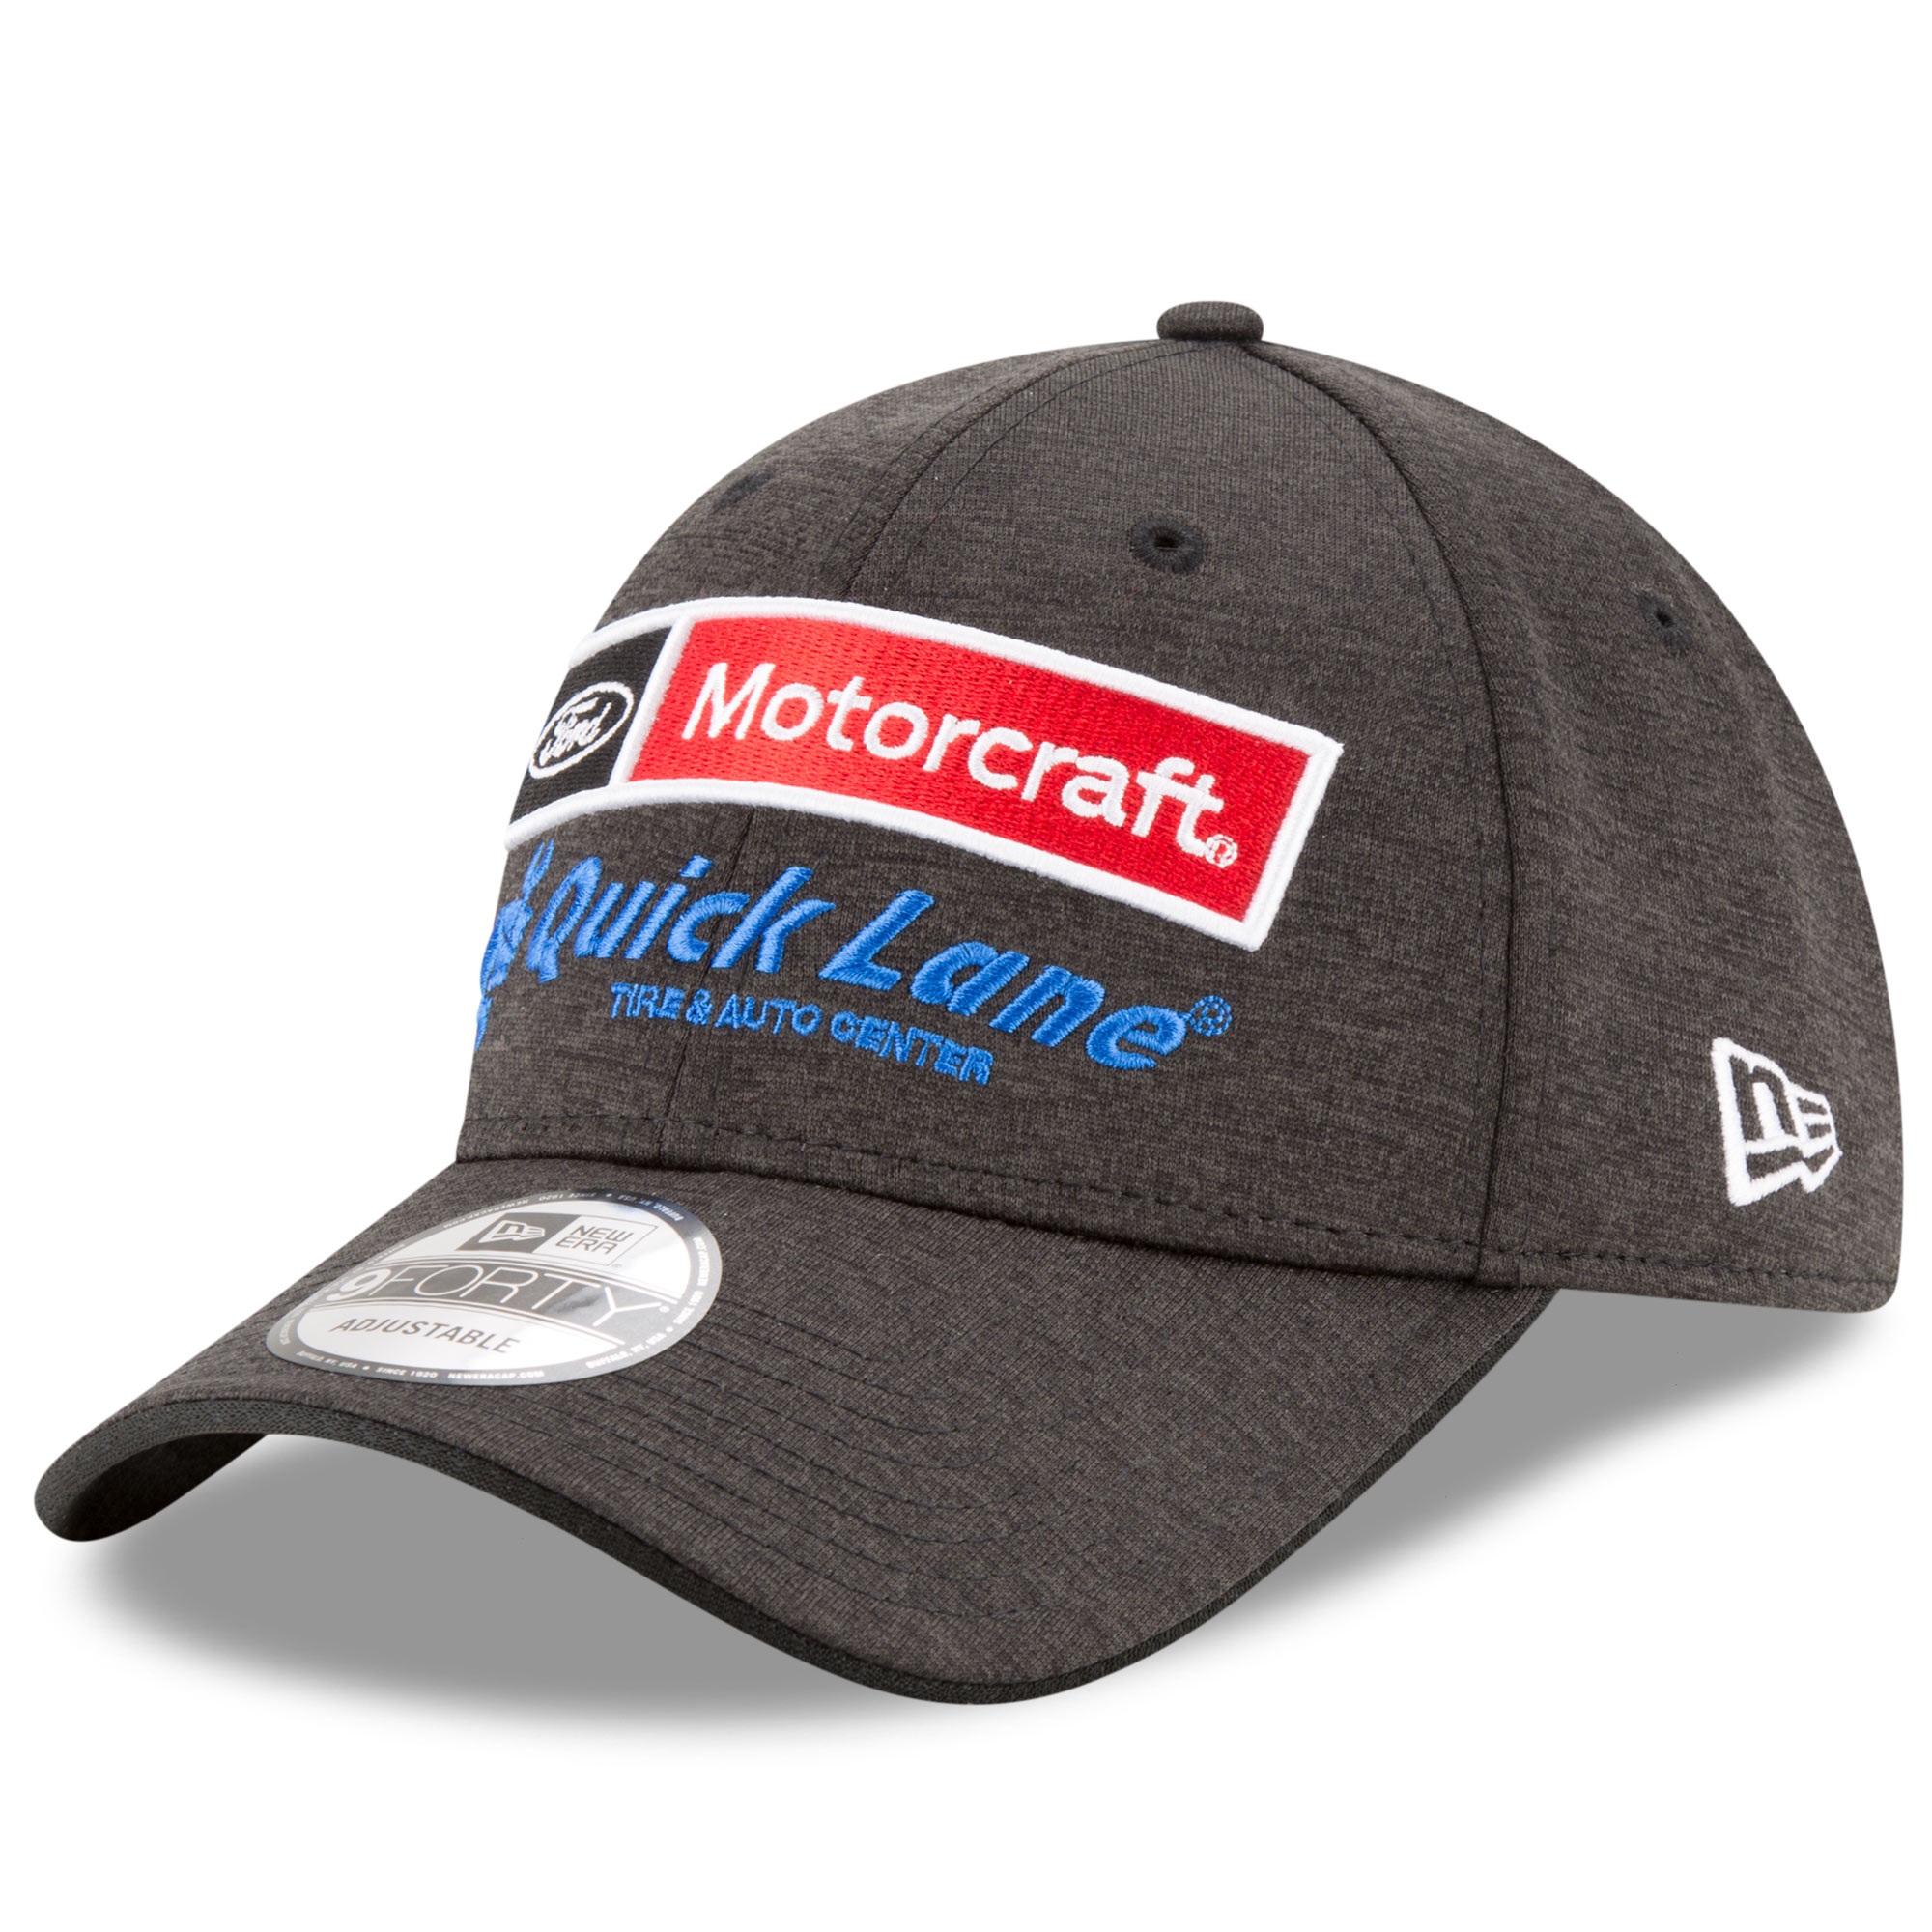 Ryan Blaney New Era Youth Motorcraft Driver 9FORTY Adjustable Hat - Heathered Black - OSFA